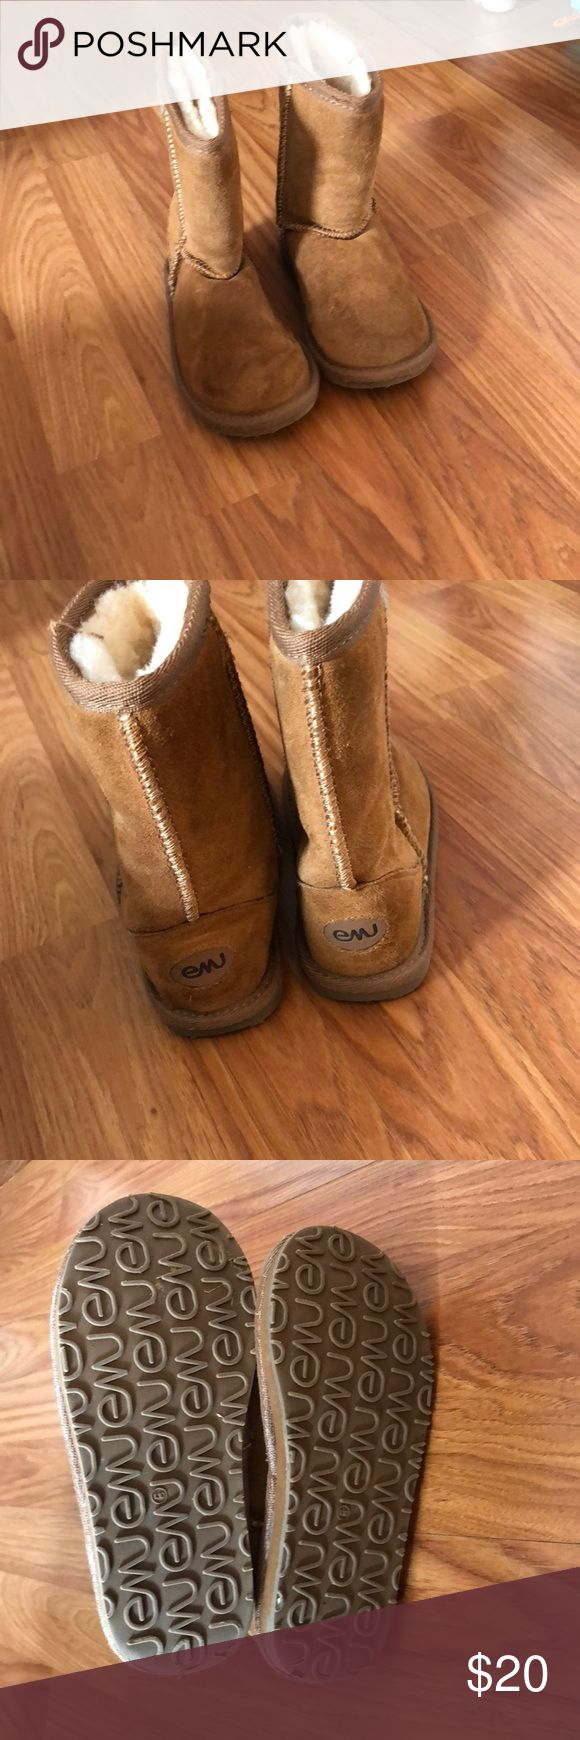 EMU brown boots Brown EMU boots size 10. Excellent condition. Barely worn Emu Shoes Boots